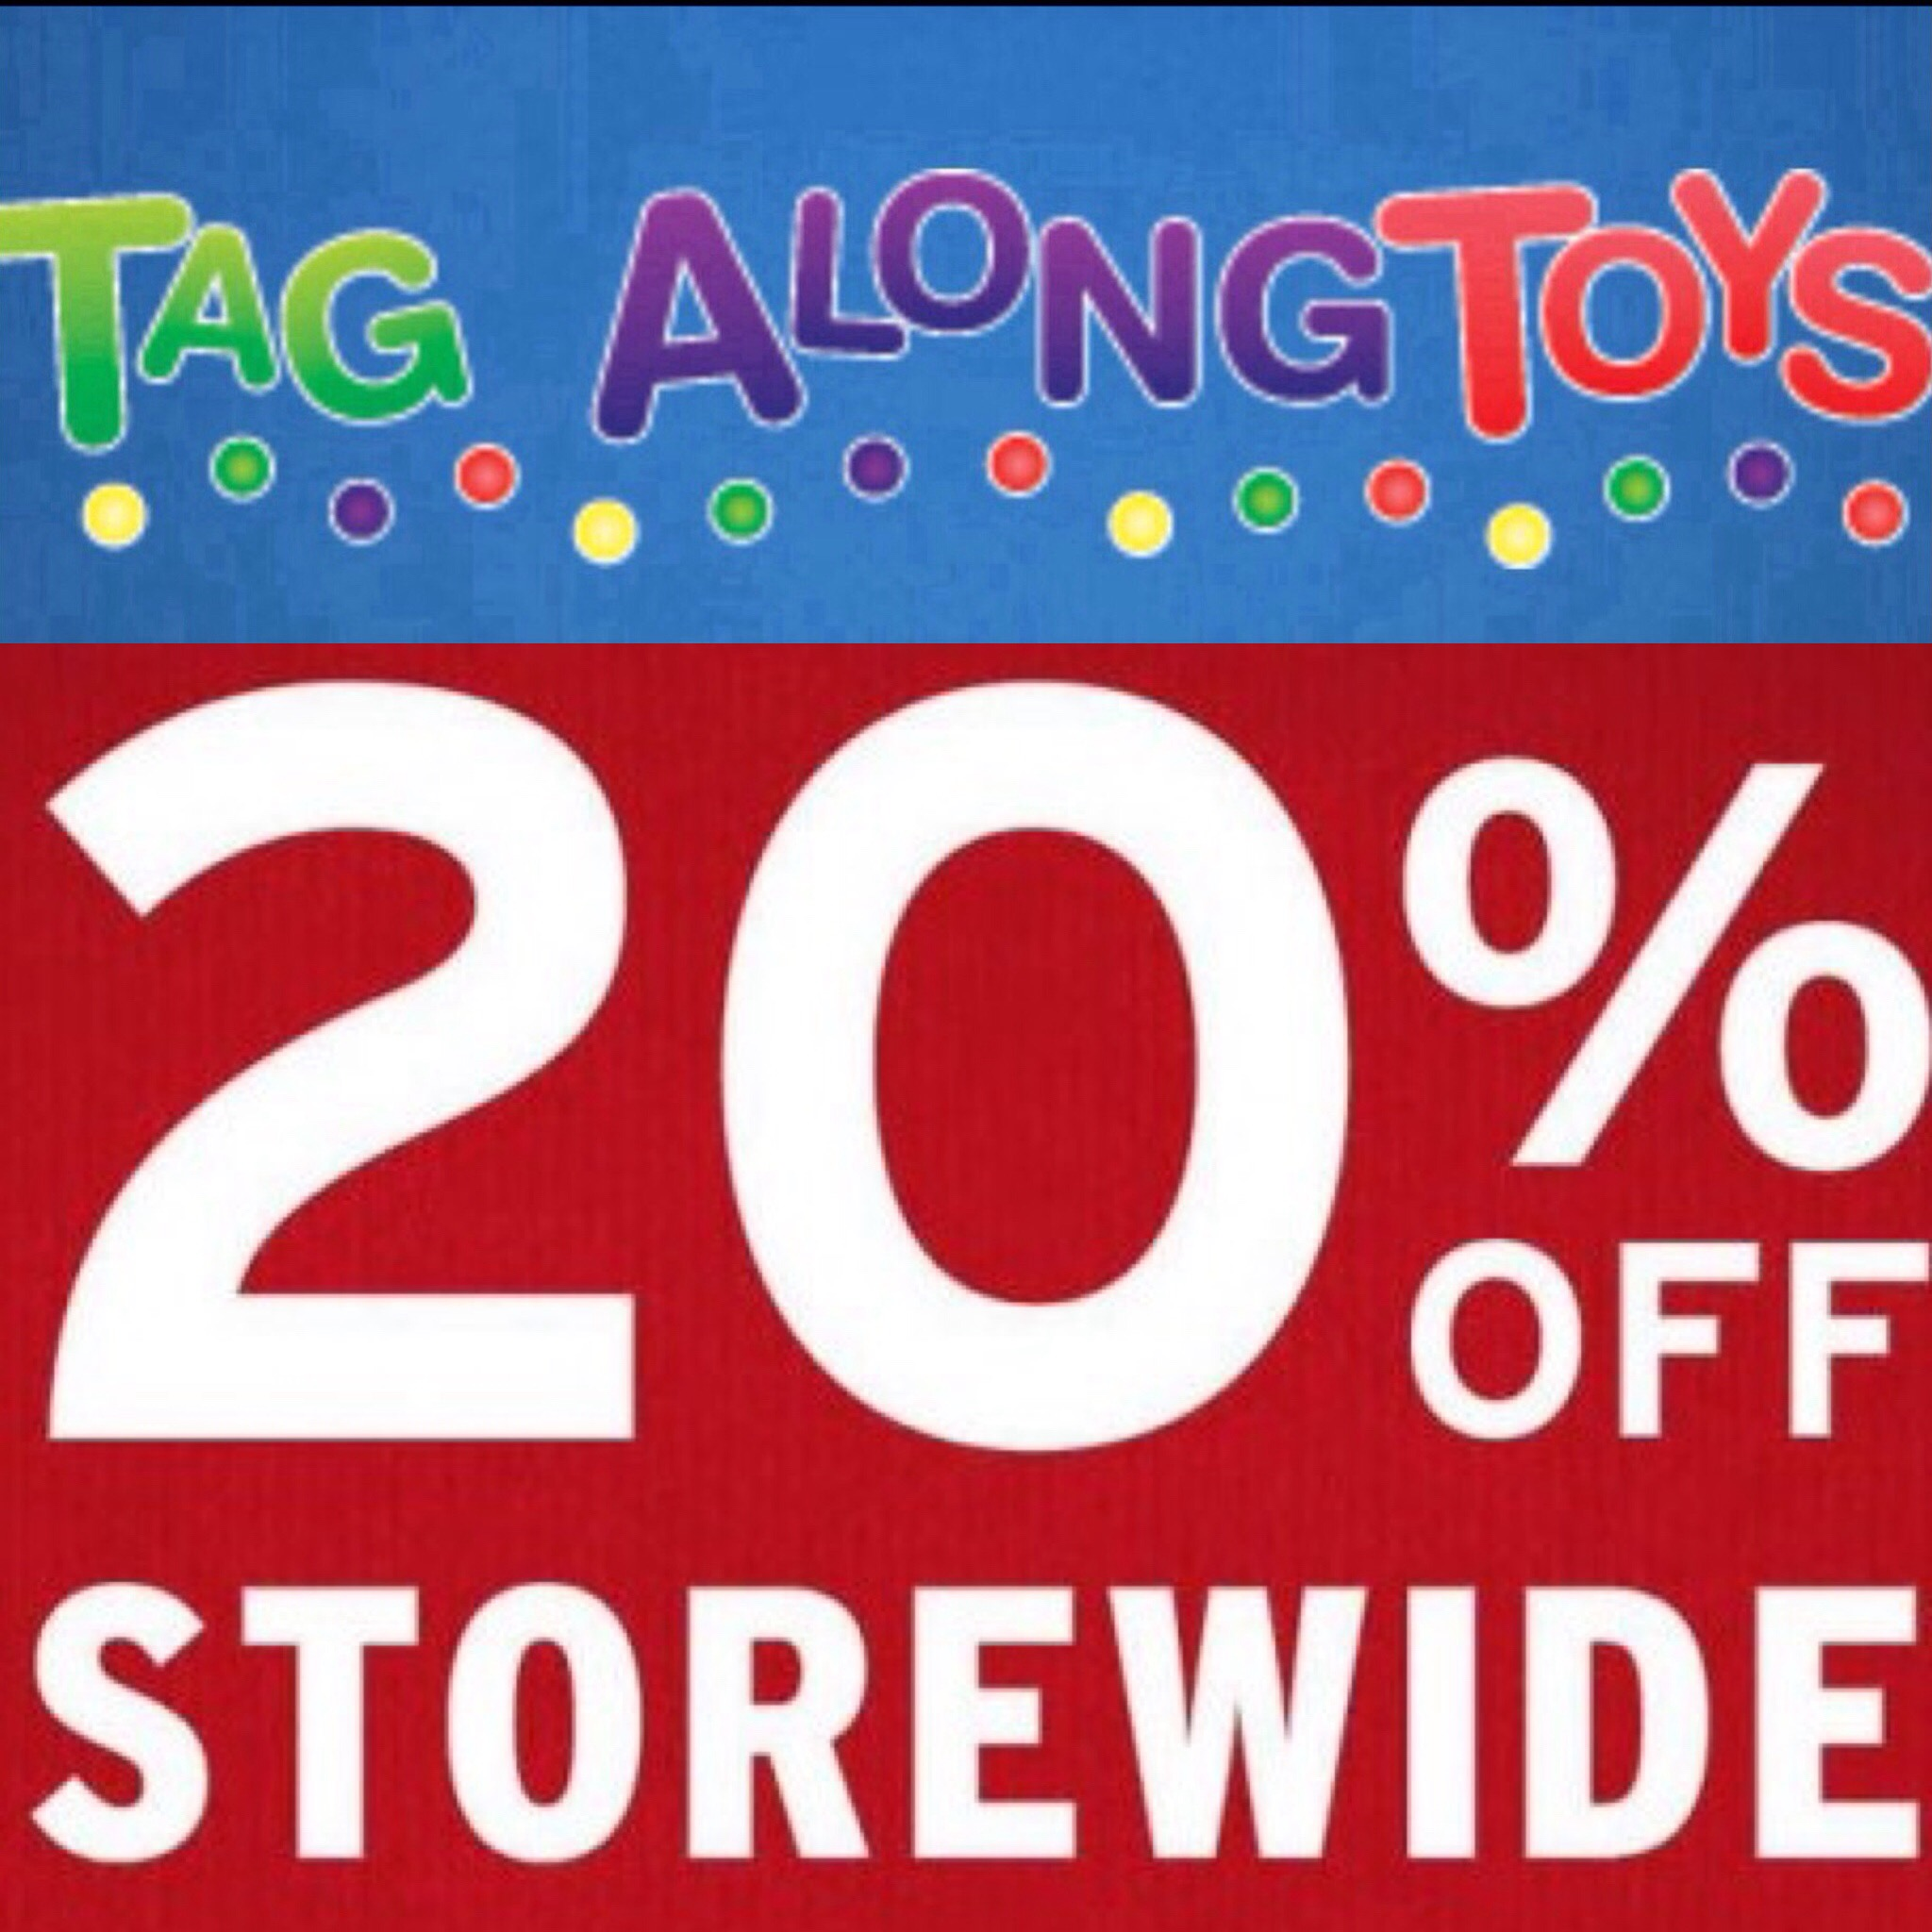 tag along toys sale